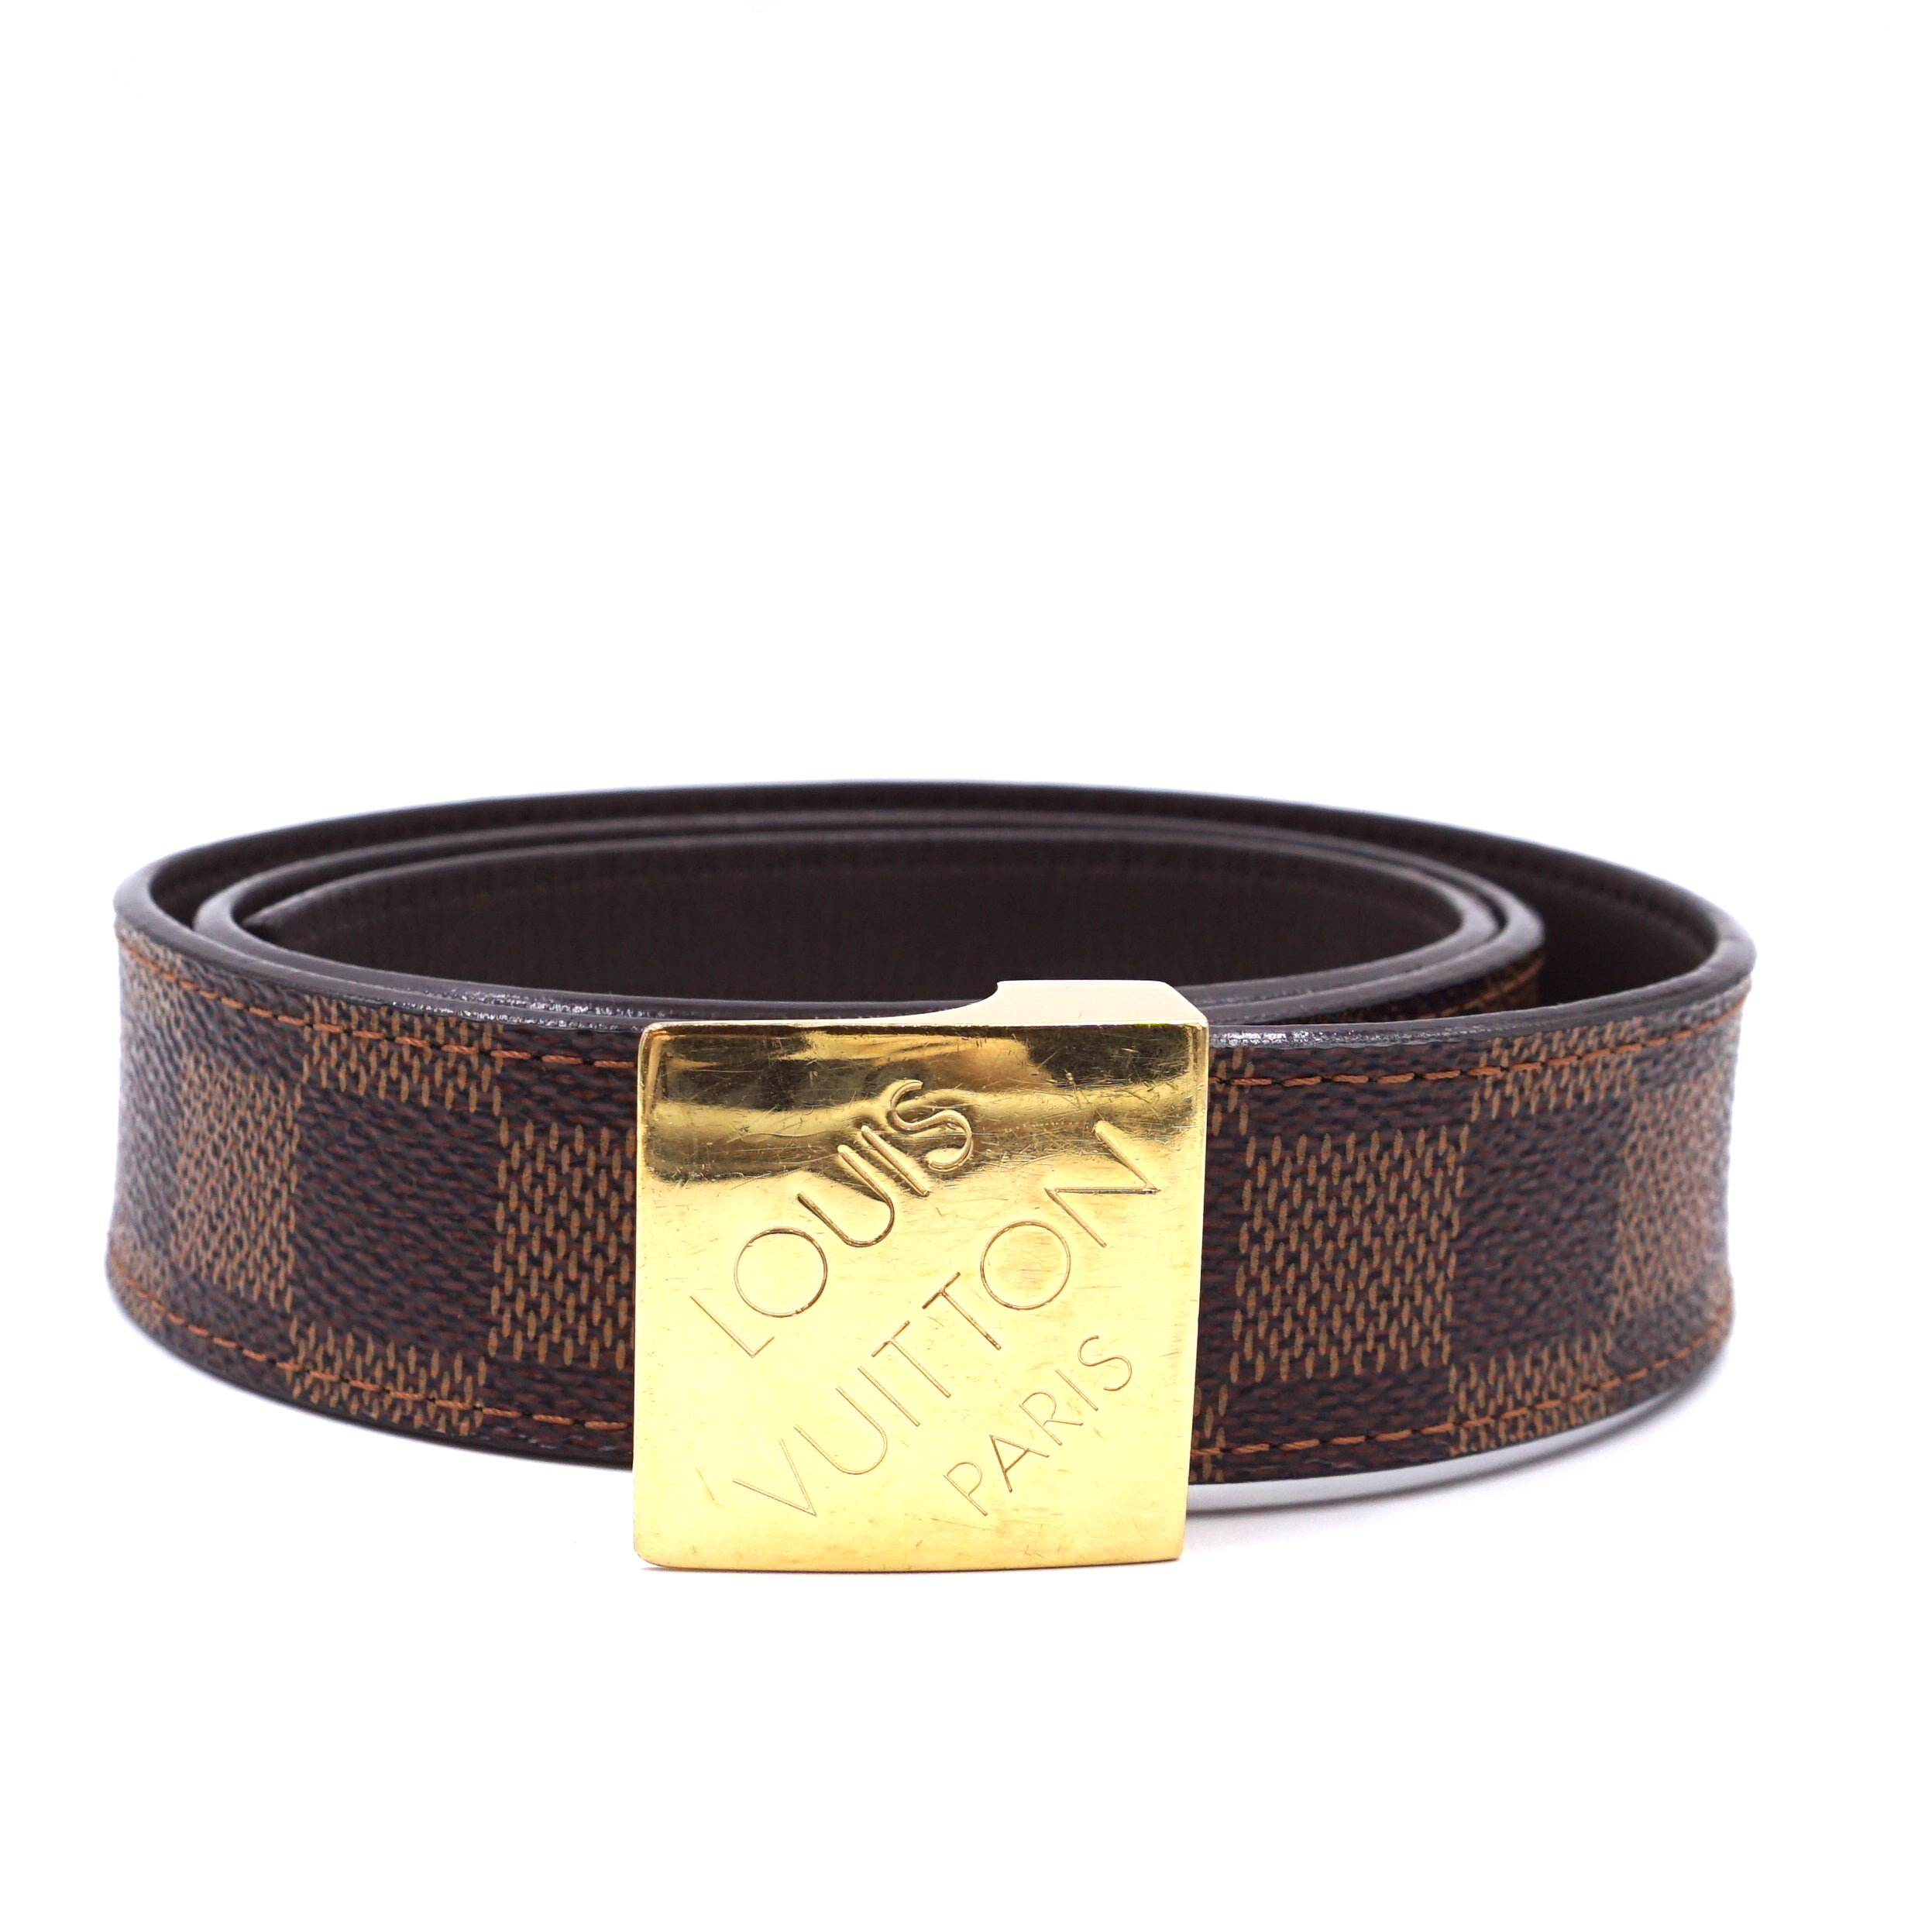 Louis Vuitton Damier Ebene Gold Buckle Leather Size 85/34 Belt